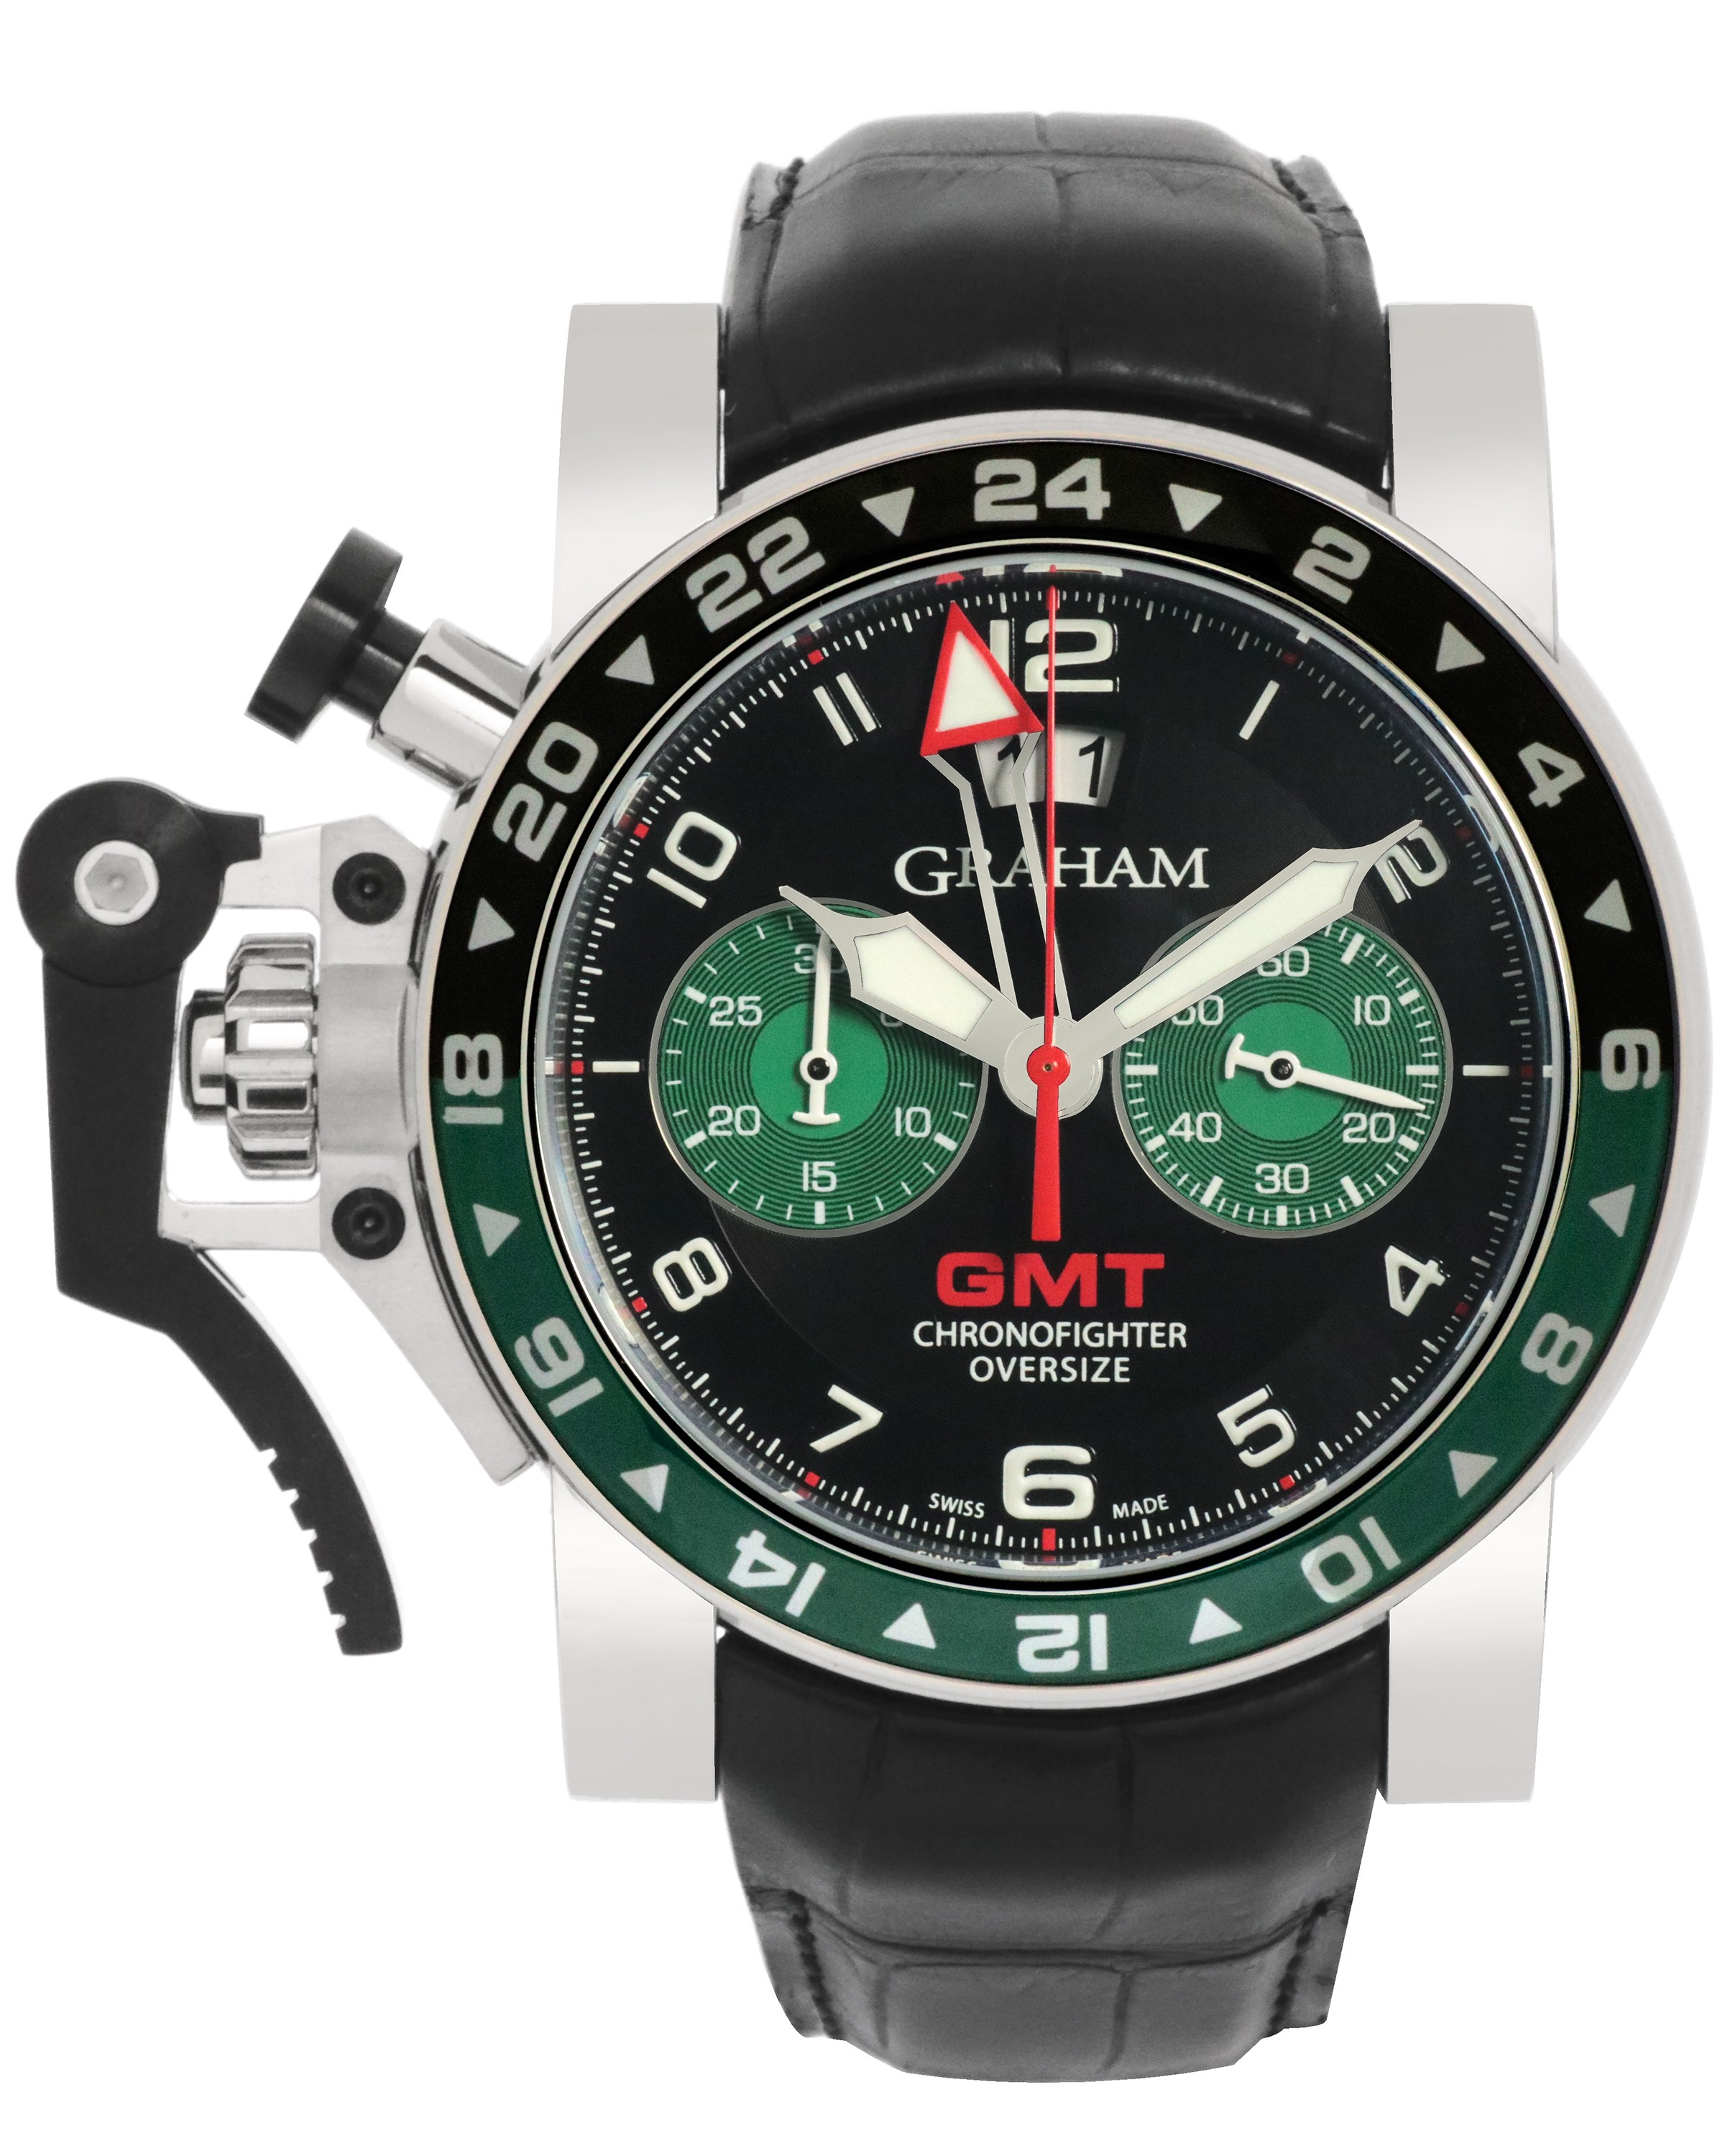 Graham Chronofighter Oversize GMT Chronograph Men's Watch 2OVGS.B12A